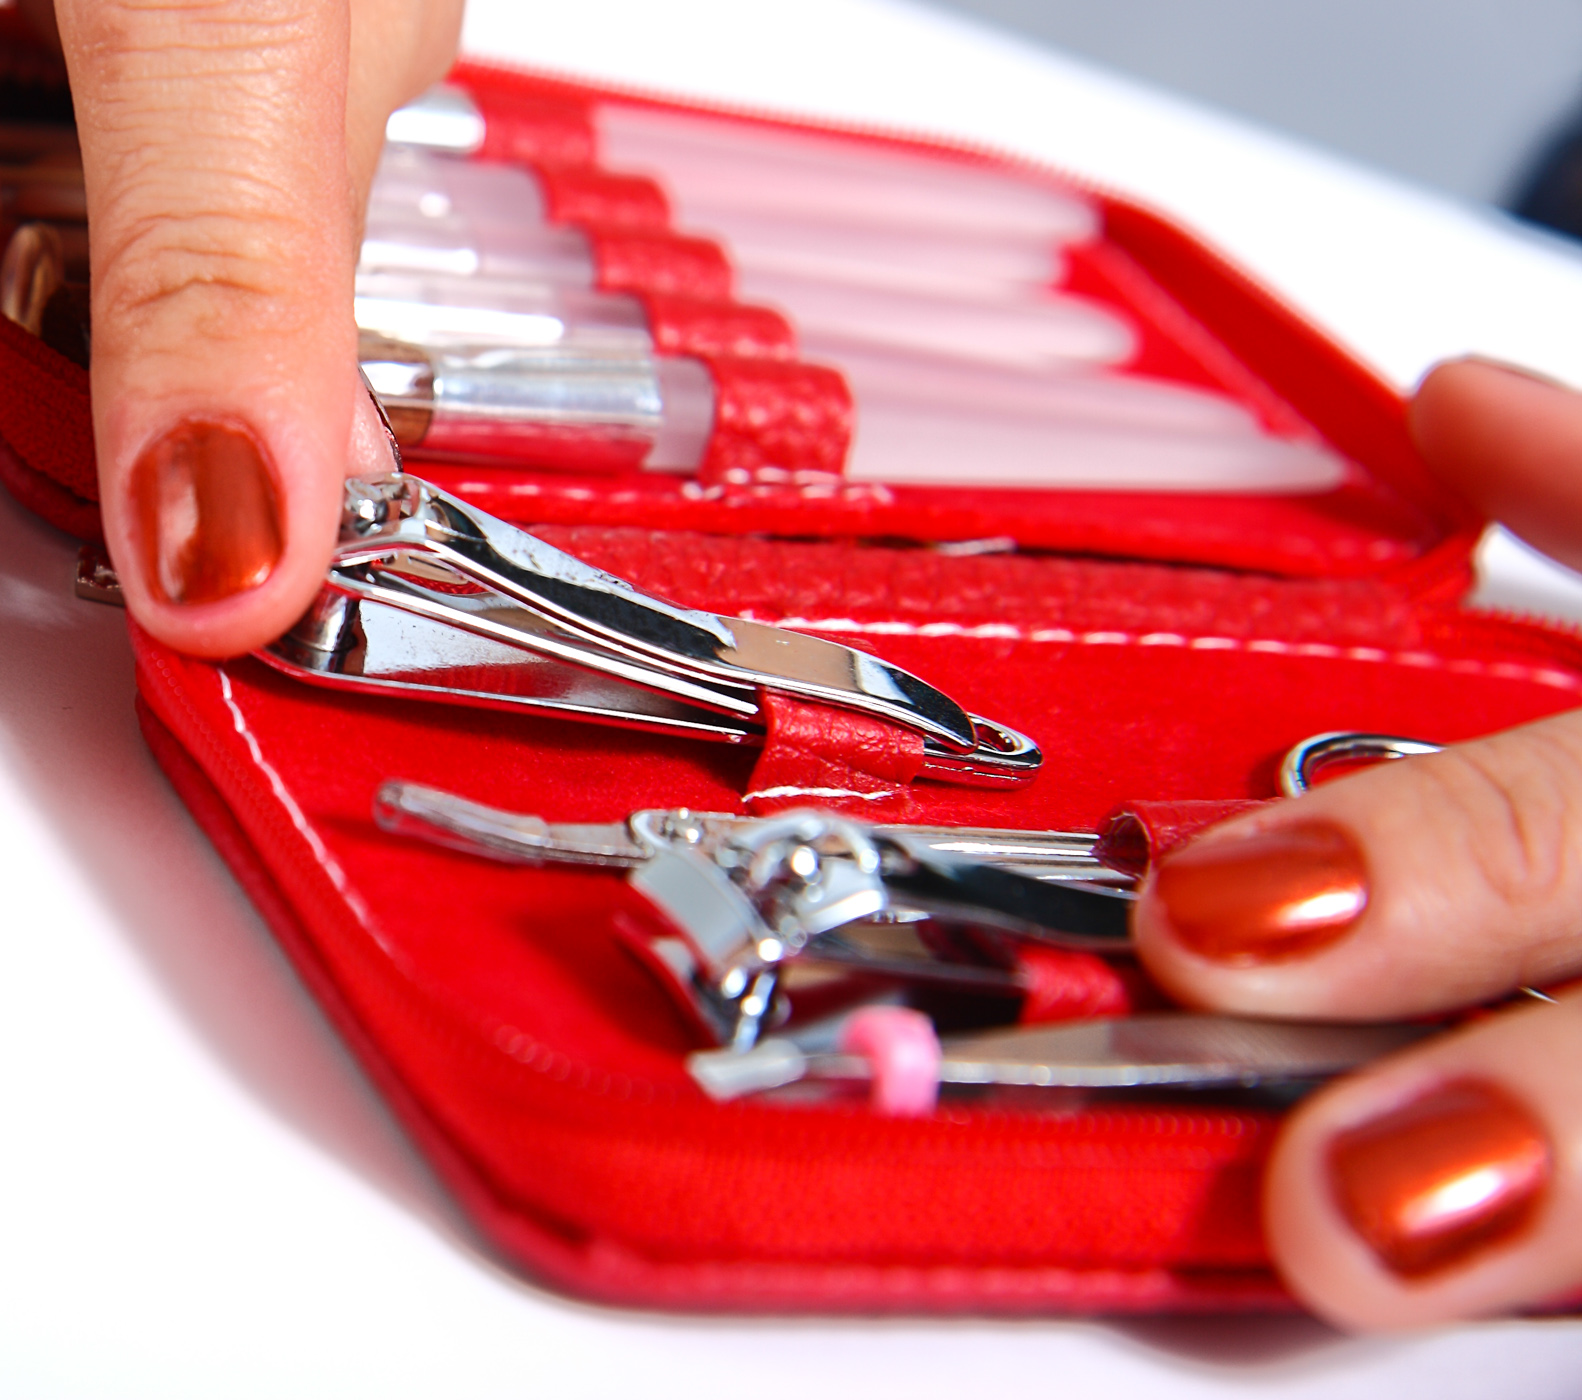 Getting Nail Clippers From A Manicure Set, Kit, Treatment, Tool, Tidy, HQ Photo